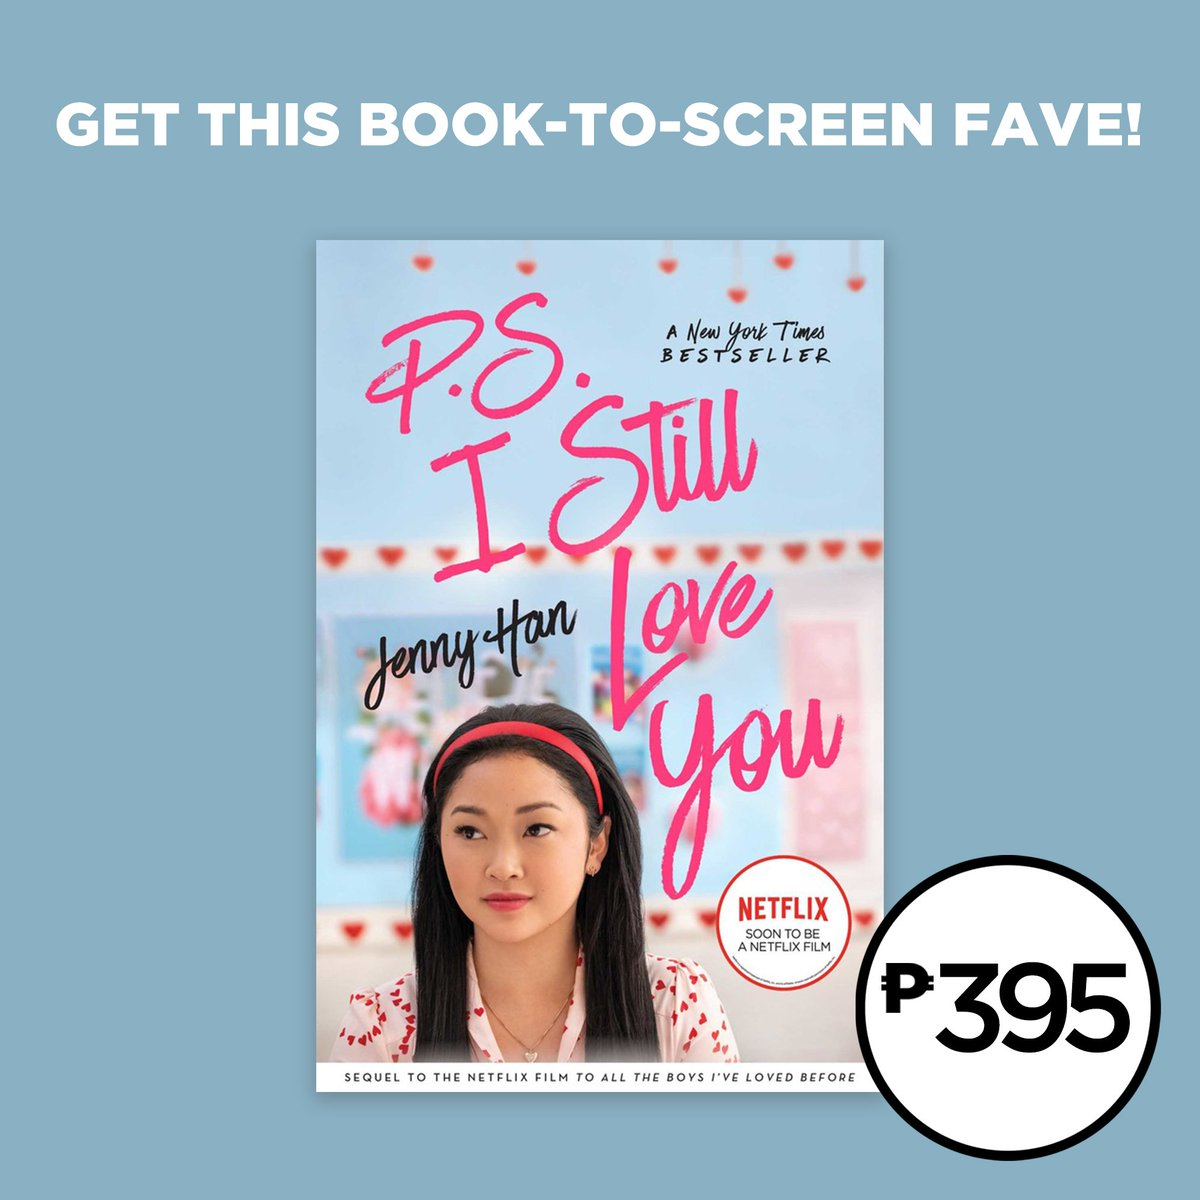 Only P395 for the movie tie-in edition of P.S. I Still Love You by Jenny Han. Shop for it in selected branches or online: .  Read up on the next chapter in the love story between Lara Jean and Peter. #NBSNewReads #NBSgifts #NBSeveryday